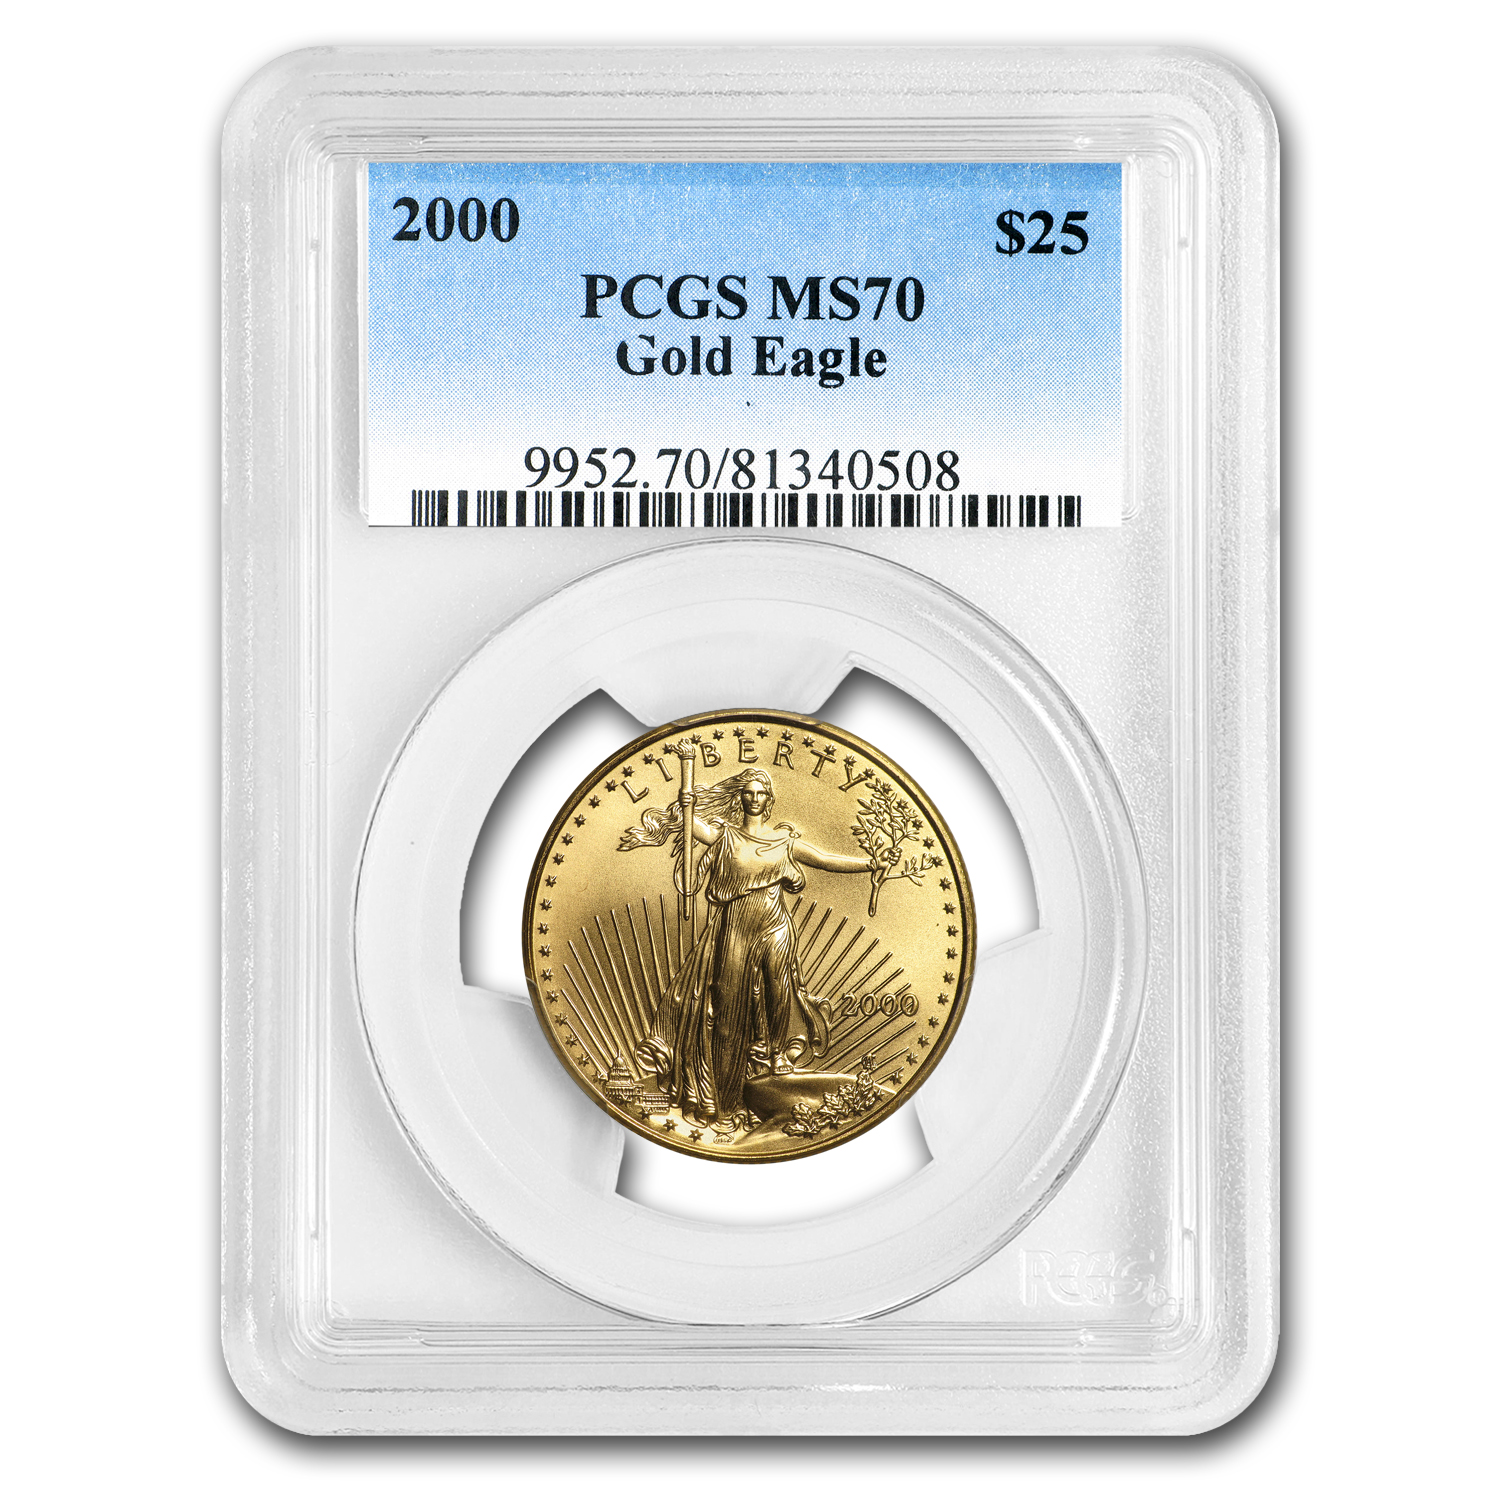 2000 1/2 oz Gold American Eagle MS-70 PCGS